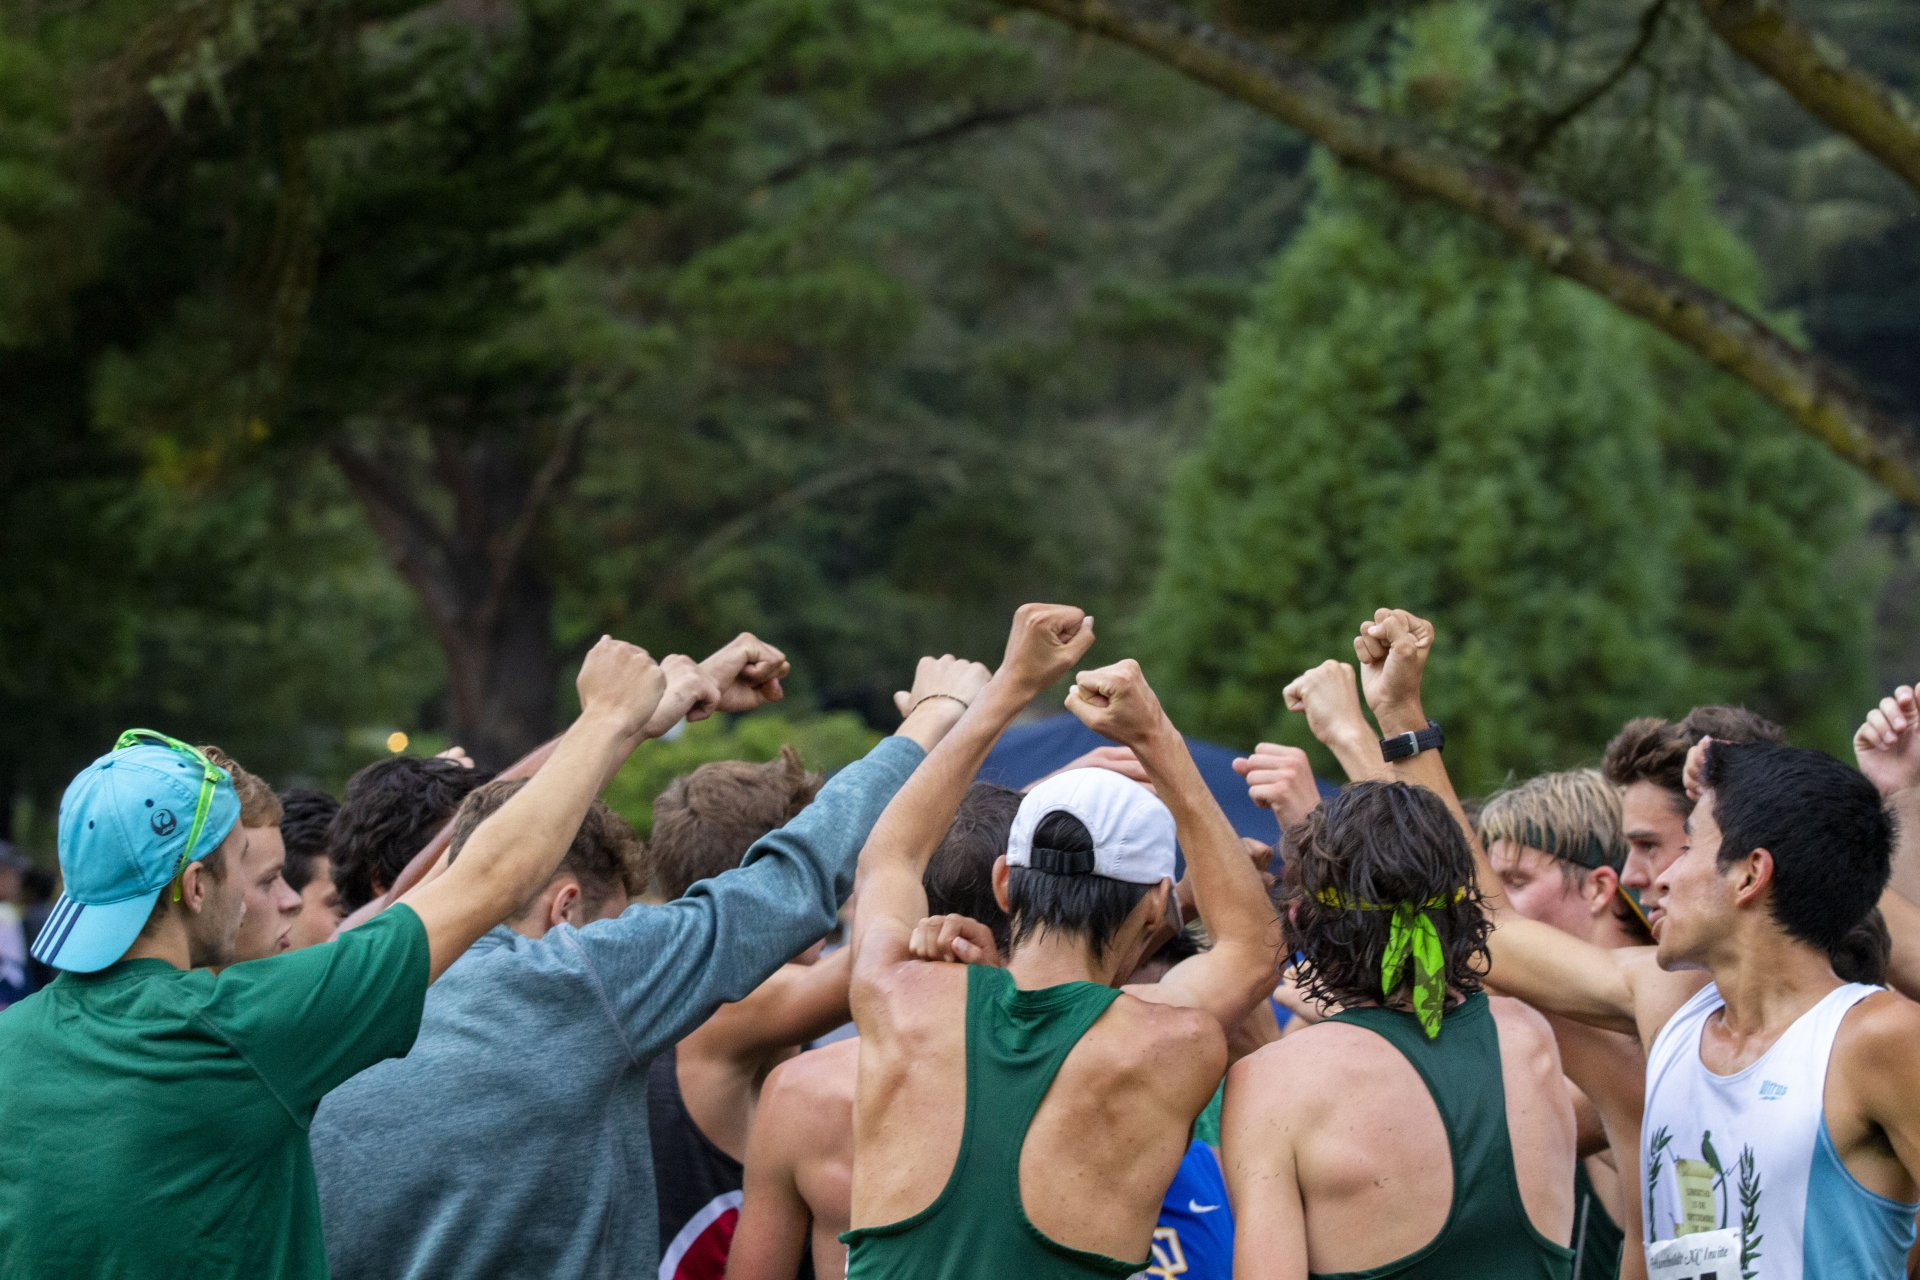 The HSU mens cross country runners raise their fists in celebration after taking both the individual and team wins at the Humboldt Invite on September 6.   Photo by Thomas Lal